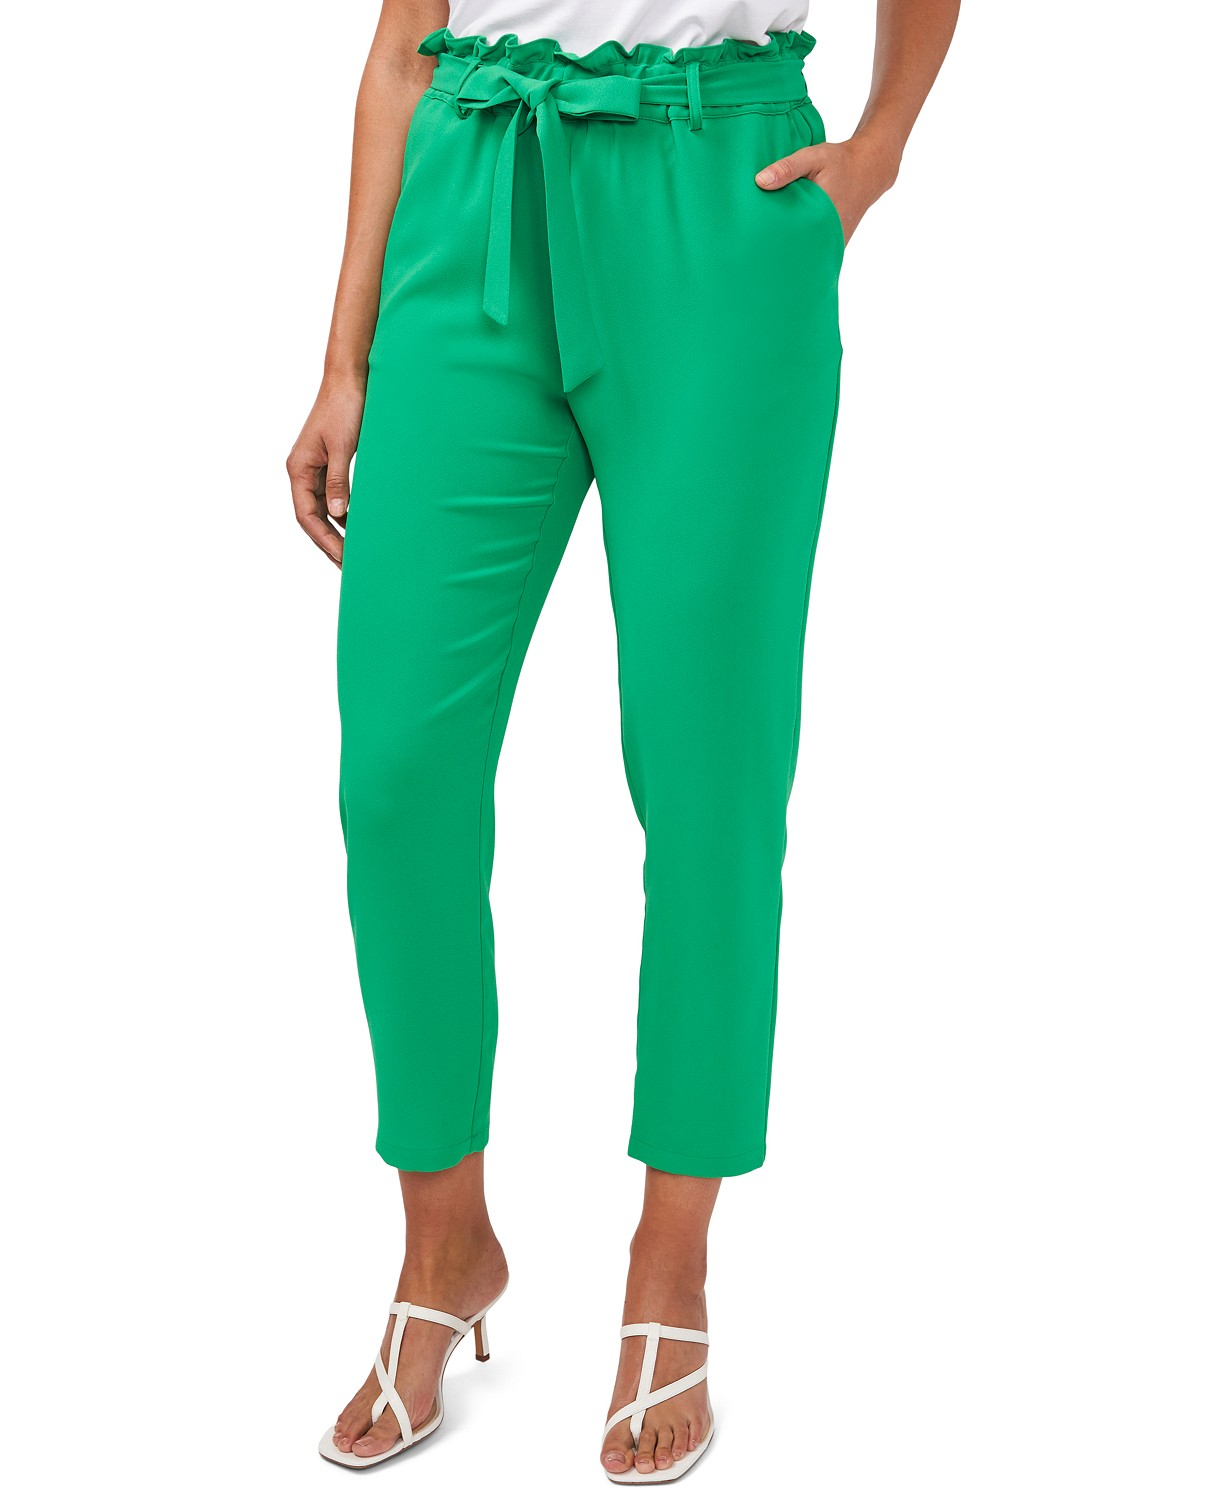 Riley & Rae Jacelyn Tie-Waist Pants, Created for Macy's